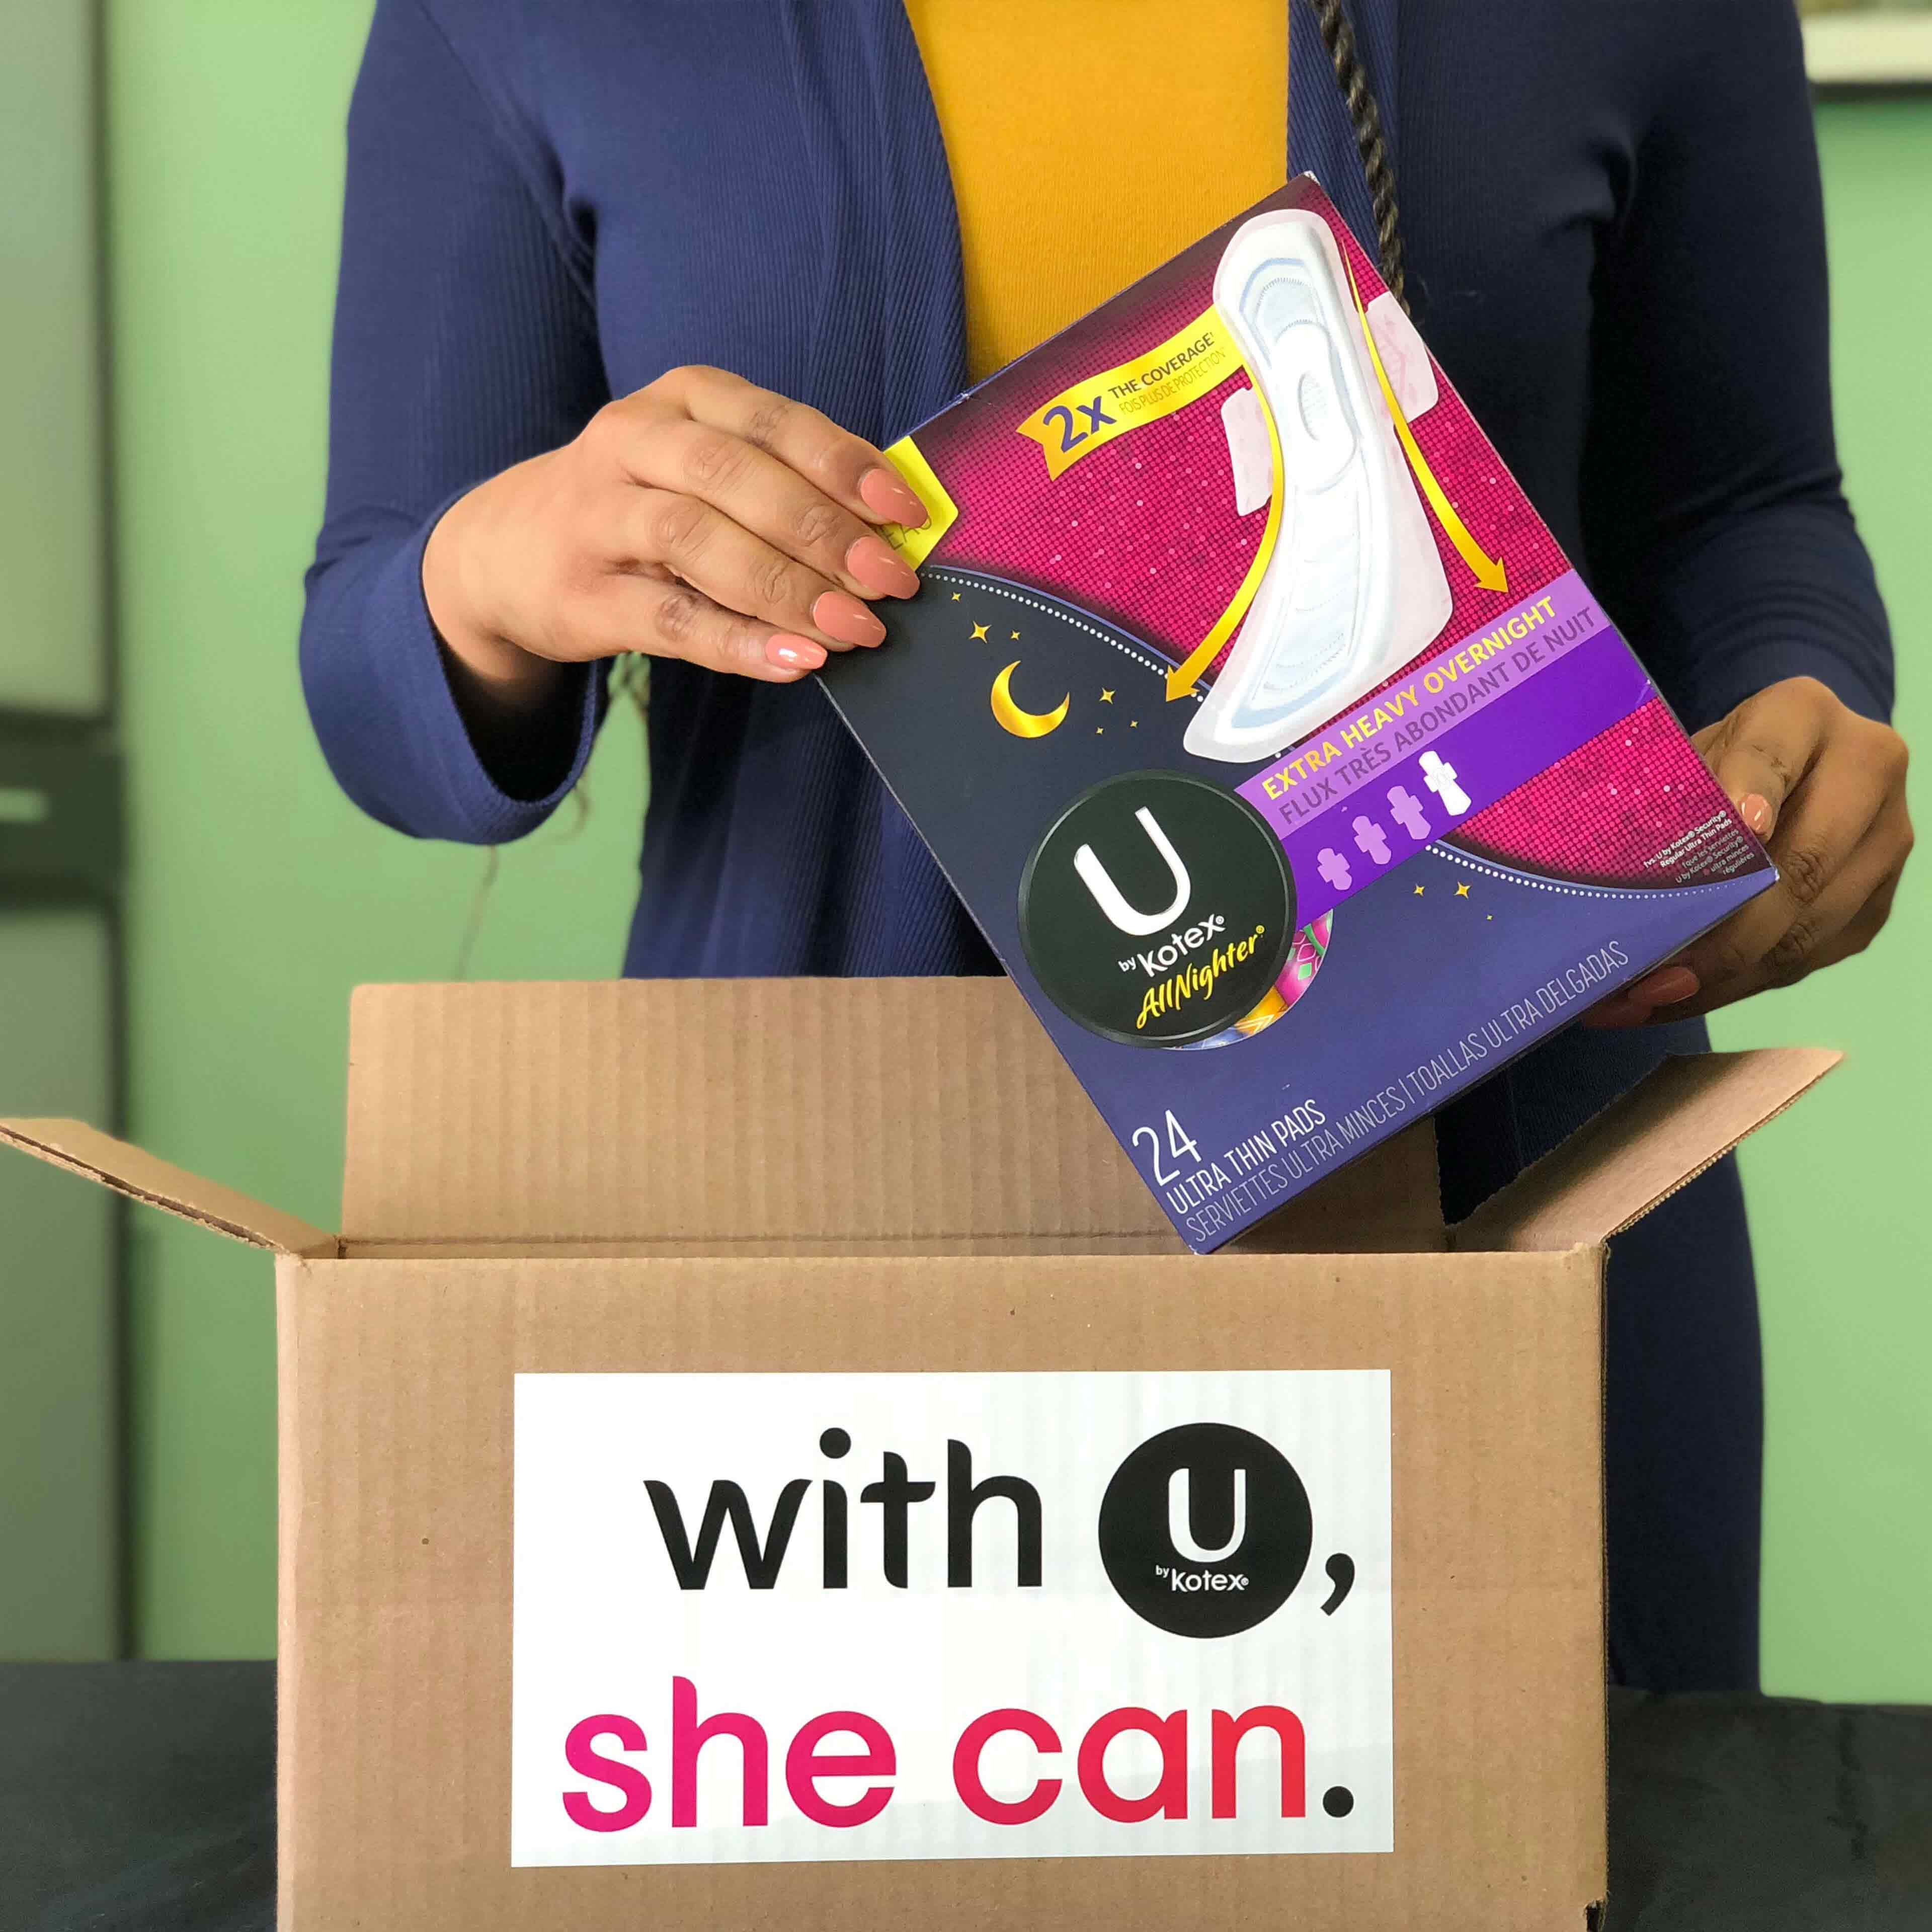 U by Kotex All Nighter Extra Heavy Overnight pads mailed to women everywhere